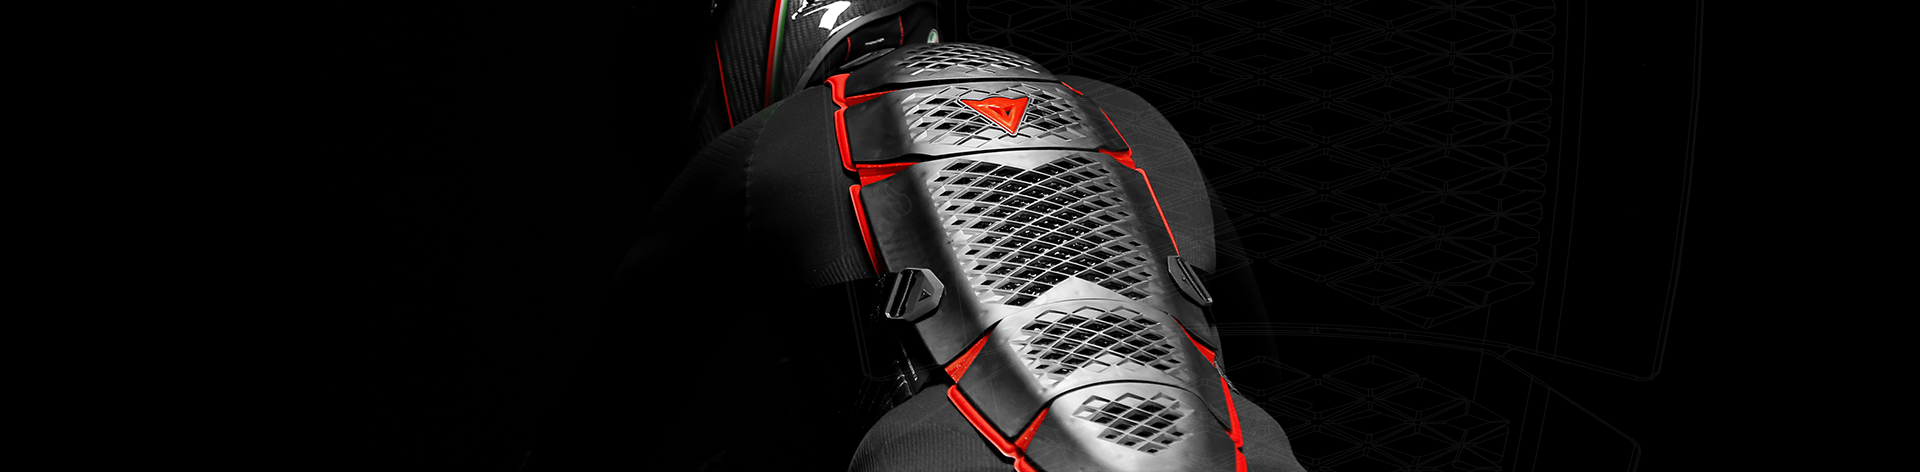 Dainese Motorbike Back Protectors